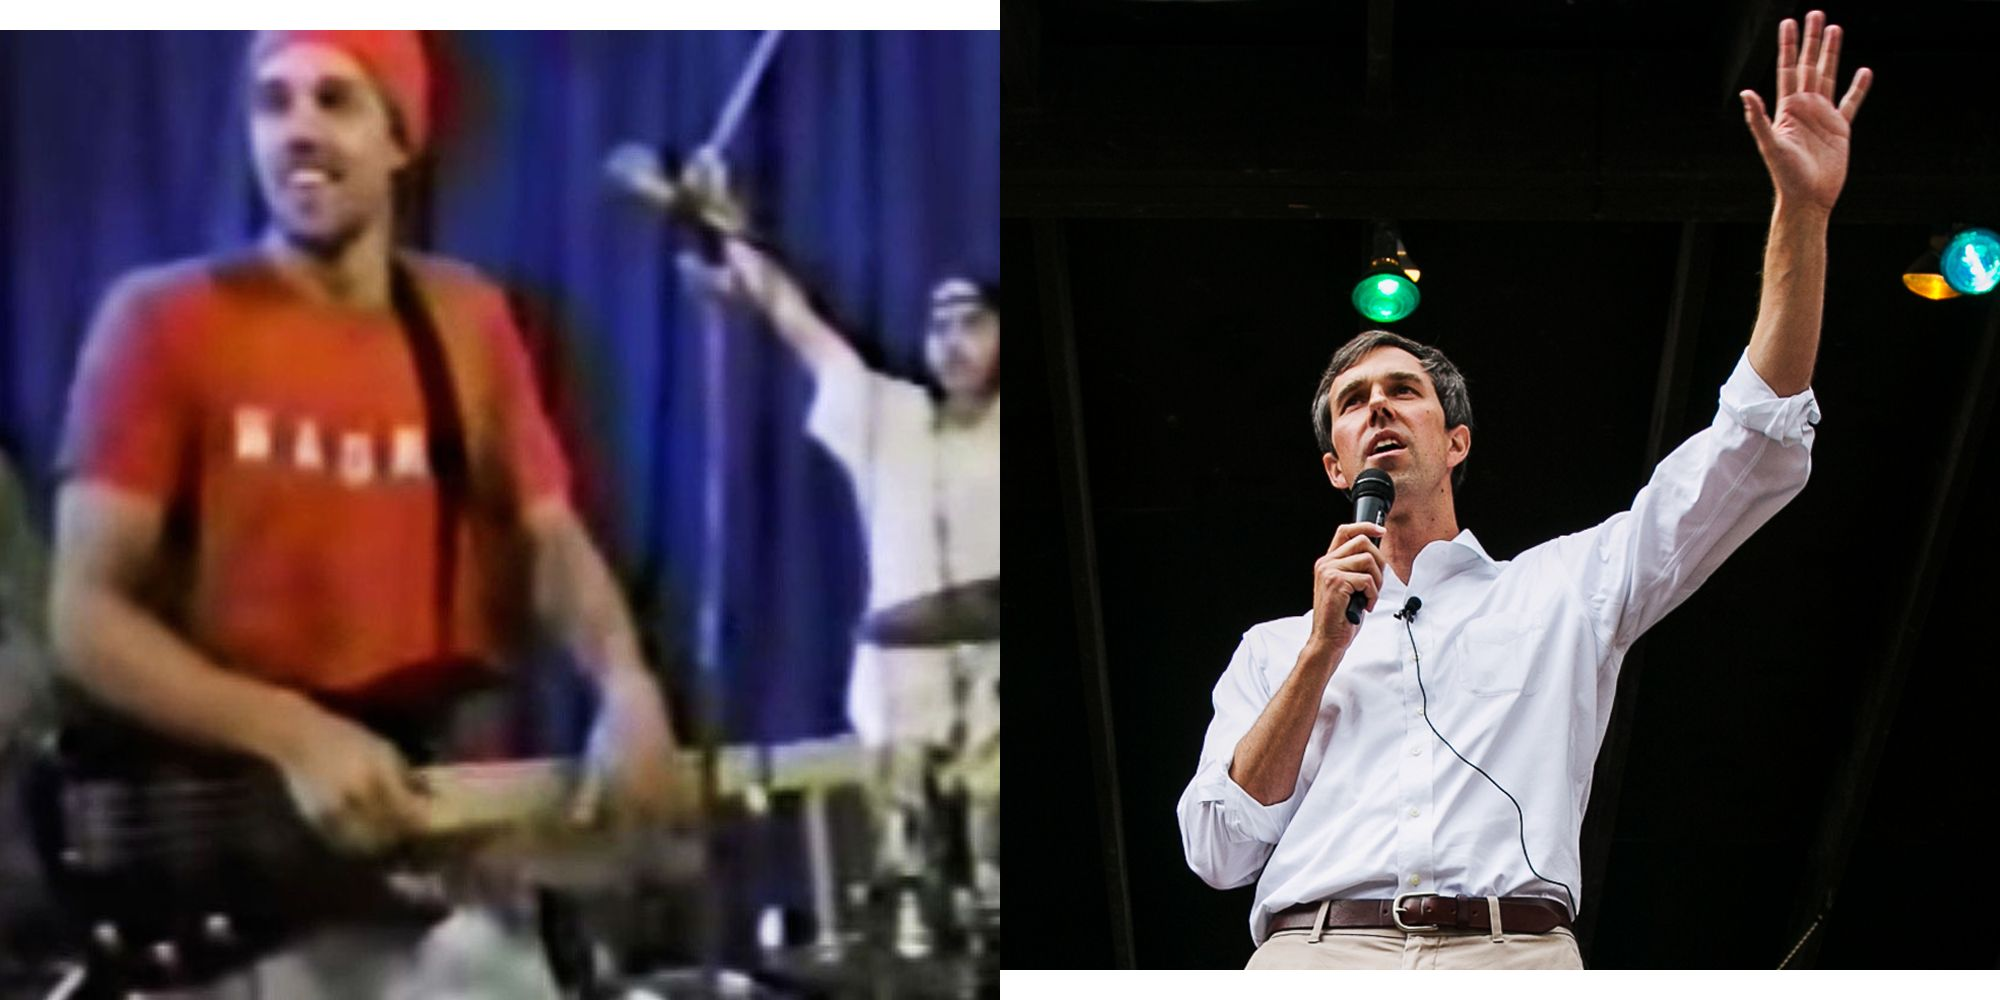 Beto ORourke Band Video I Would Absolutely Mosh For